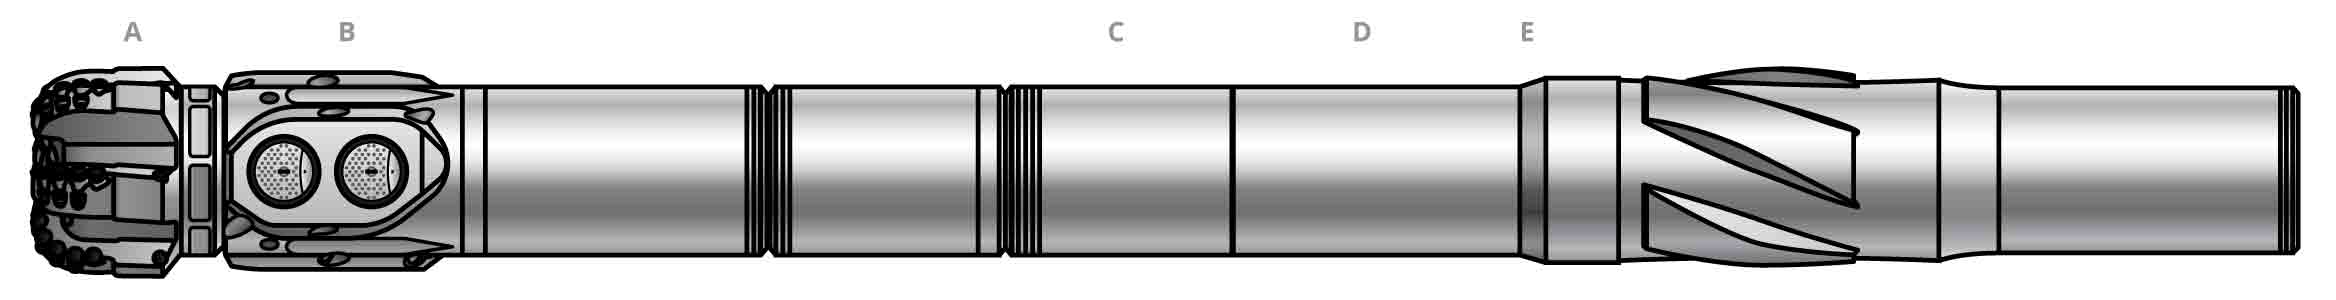 Simplified side-view illustration of the core components of a NeoSteer CL at-bit rotary steerable system BHA